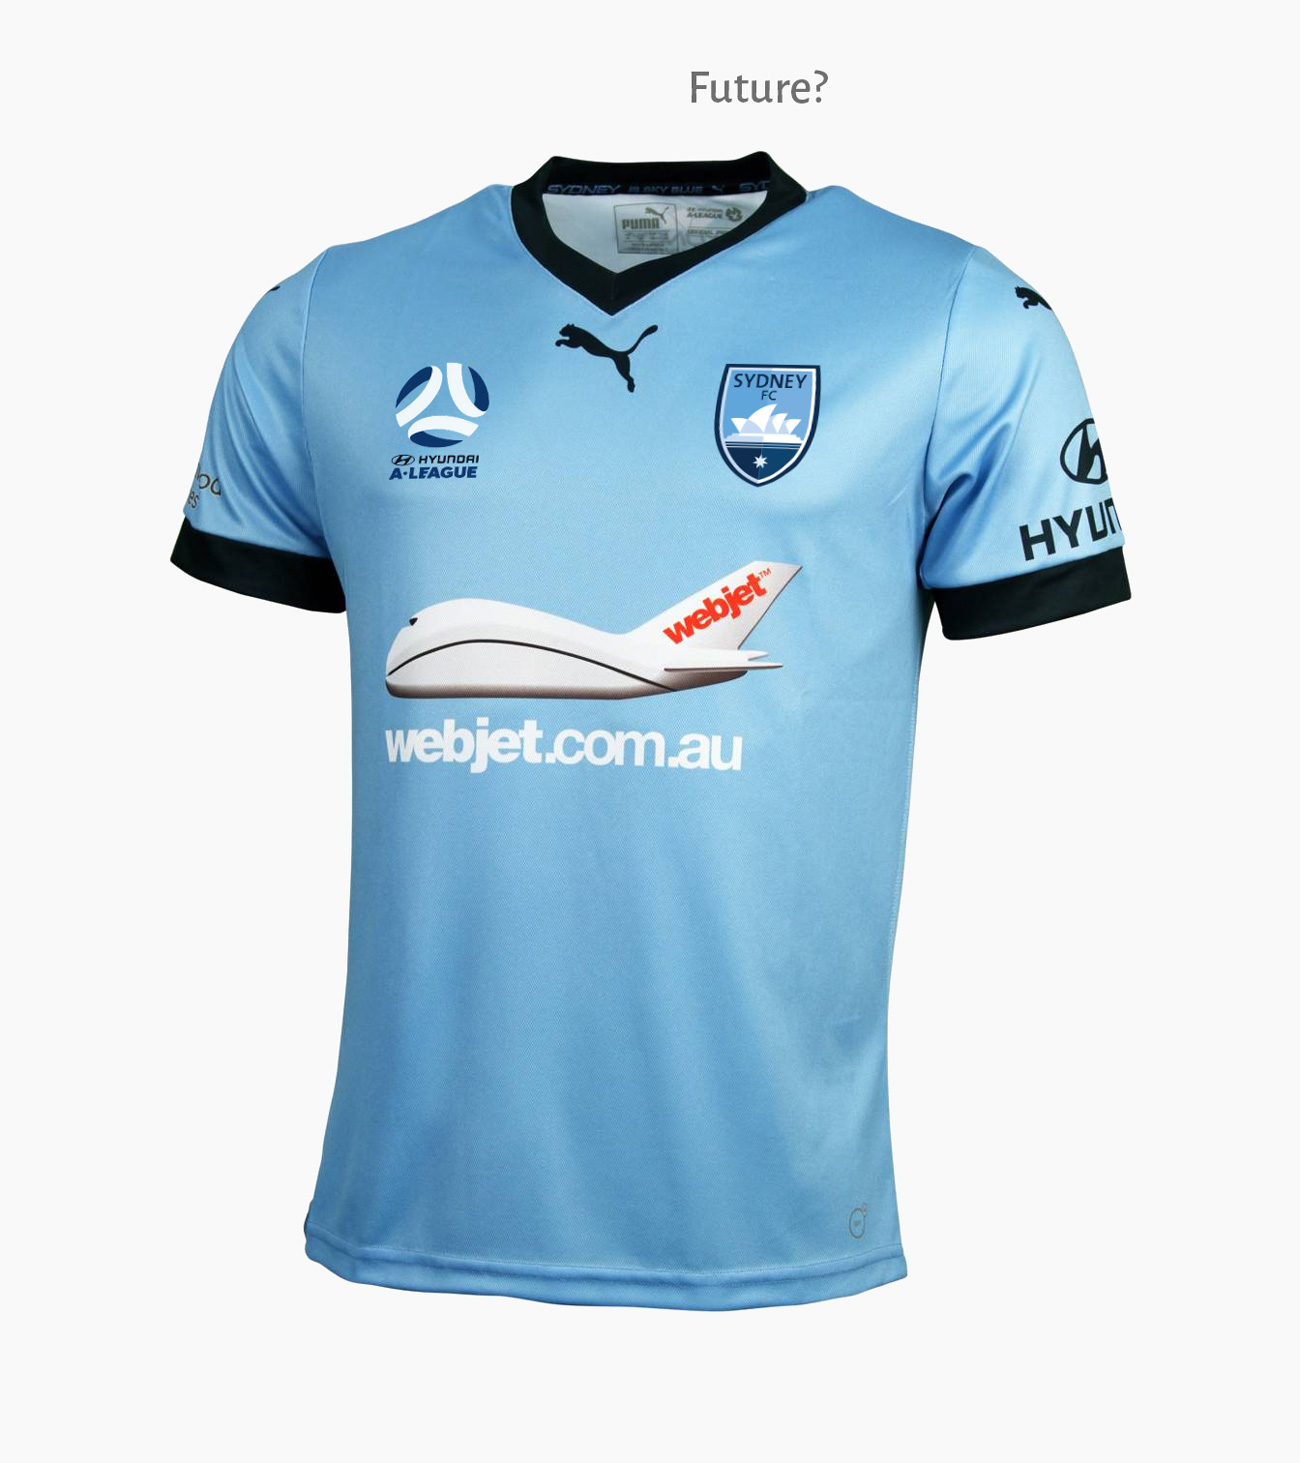 Mockup of anticipated Sydney FC 2017/18 men's home jersey with new A-League and club logos